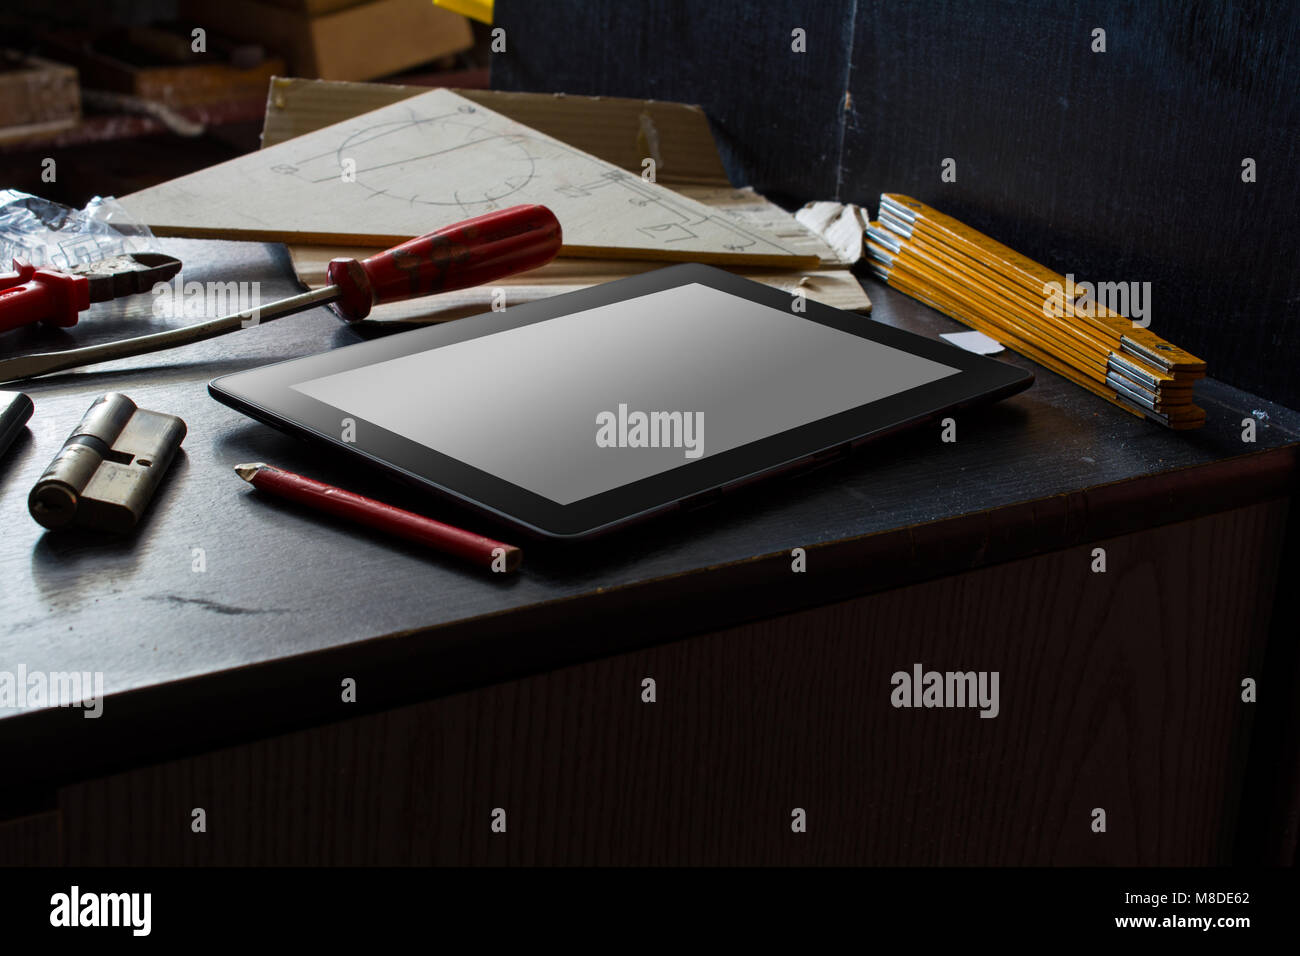 Tablet With Blank Screen On A Dark Cupboard With Tools In A Dirty Basement - Stock Image